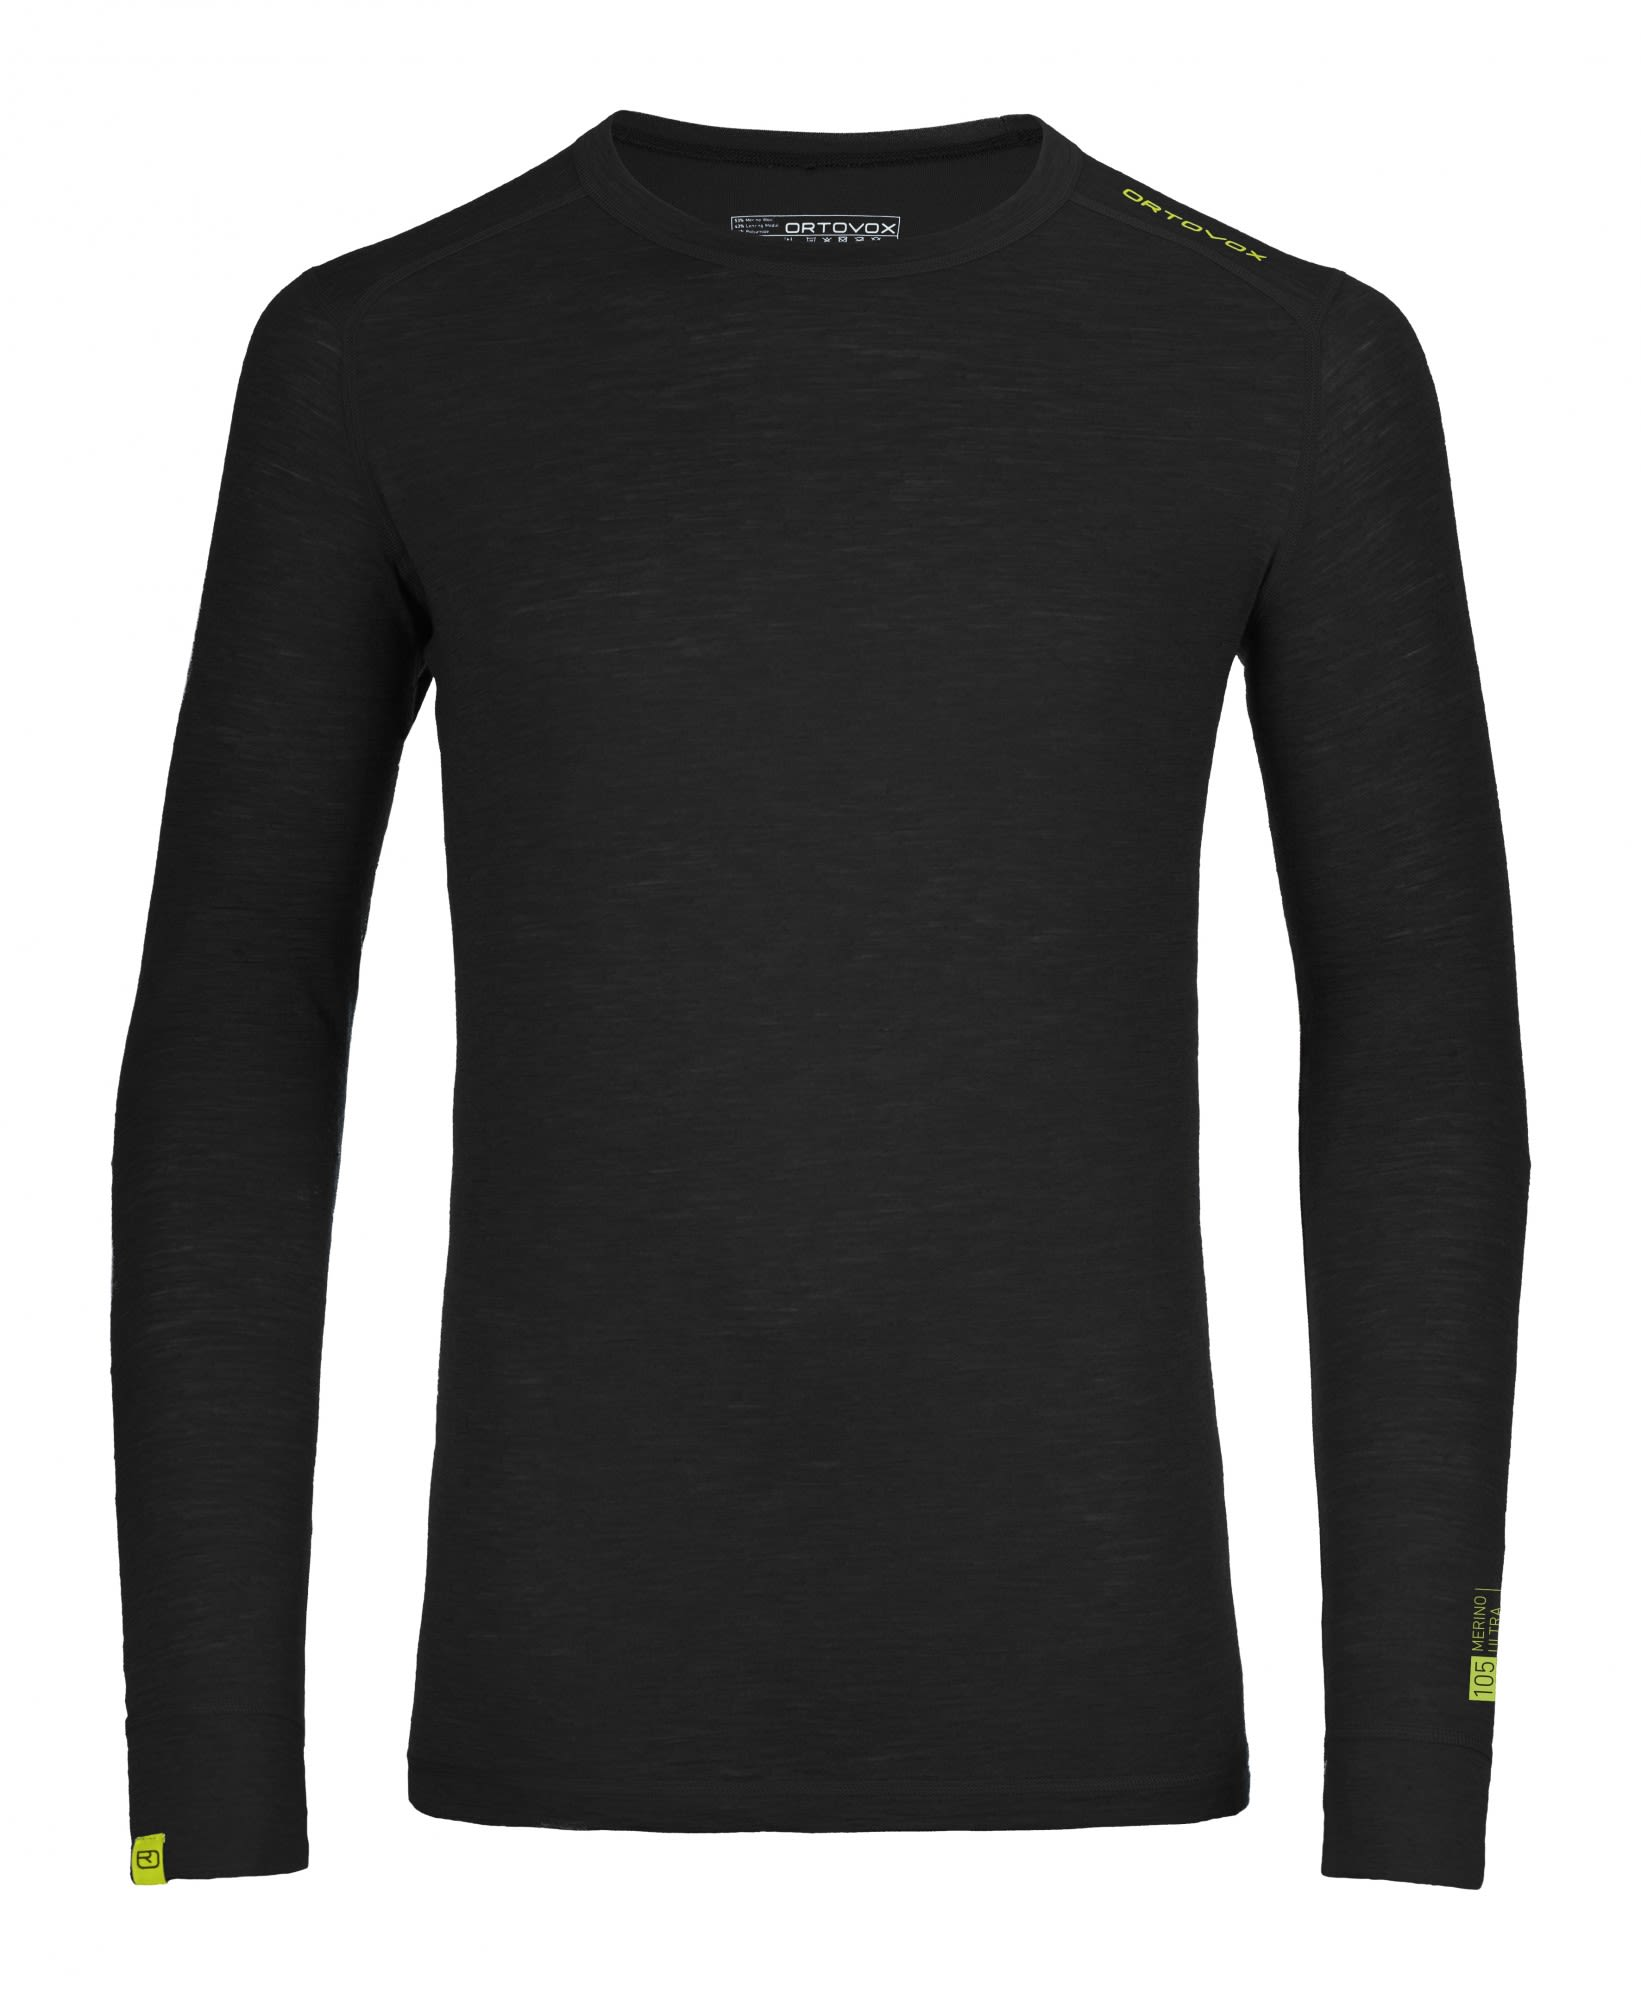 Ortovox 105 Merino Ultra Long Sleeve Schwarz, Male Merino Oberteil, XL